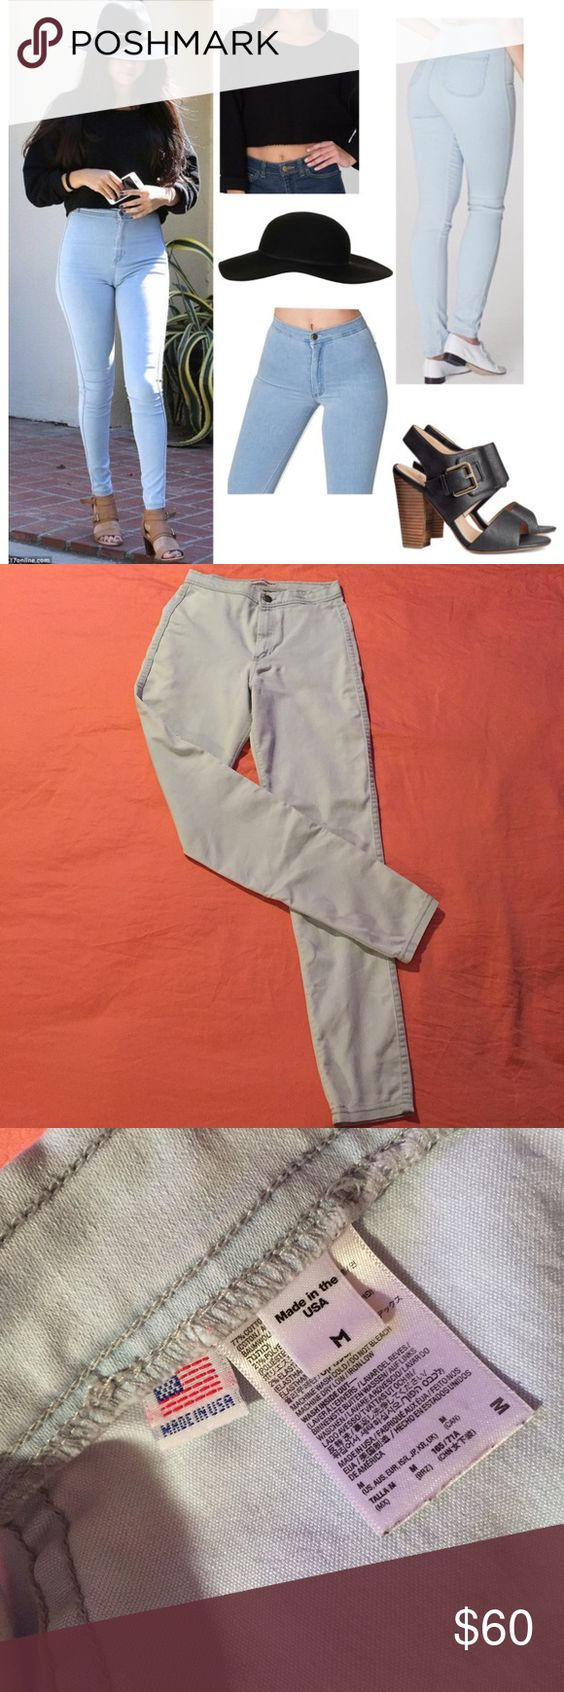 American Apparel Easy Jeans Light Wash Worn only 3 times. In great conditions. Just feel like I'm a little too short for these ; I'm 28 waist and 42 hips. American Apparel Pants Skinny